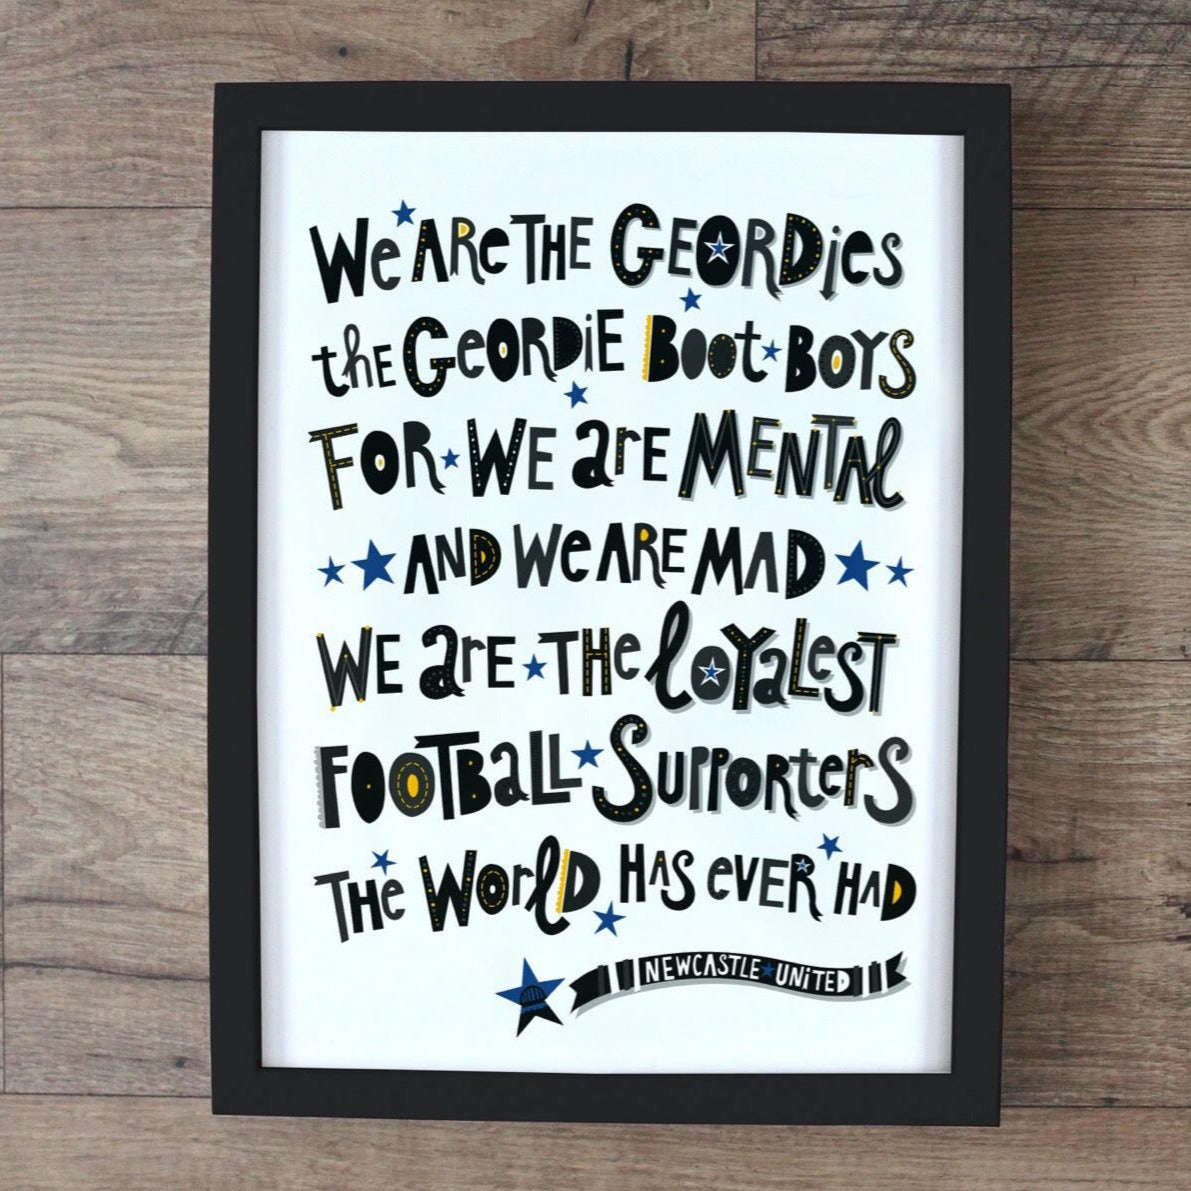 Geordie Boot Boys A4 unframed print